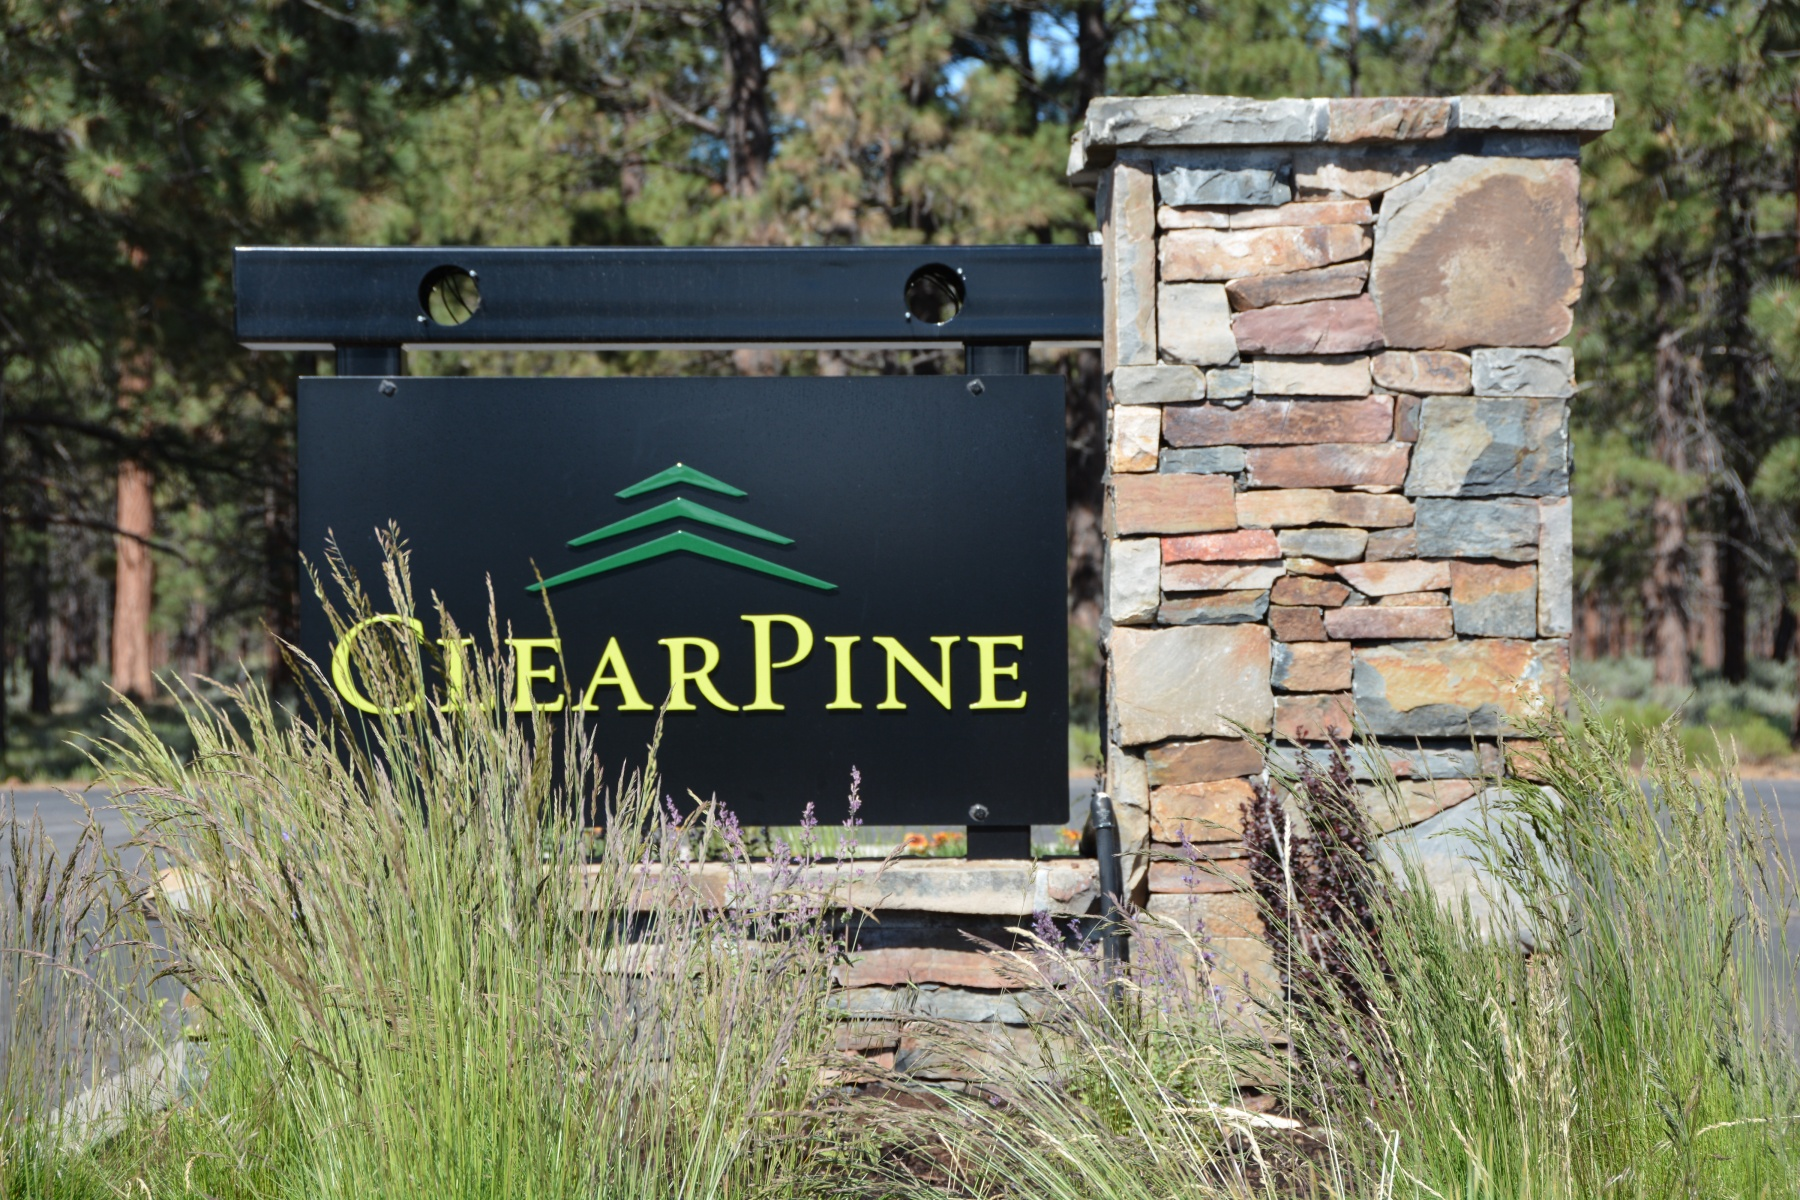 Land for Sale at Flat Build Ready Lot in ClearPine! 0 Heising Dr Lot 26 Sisters, Oregon, 97759 United States